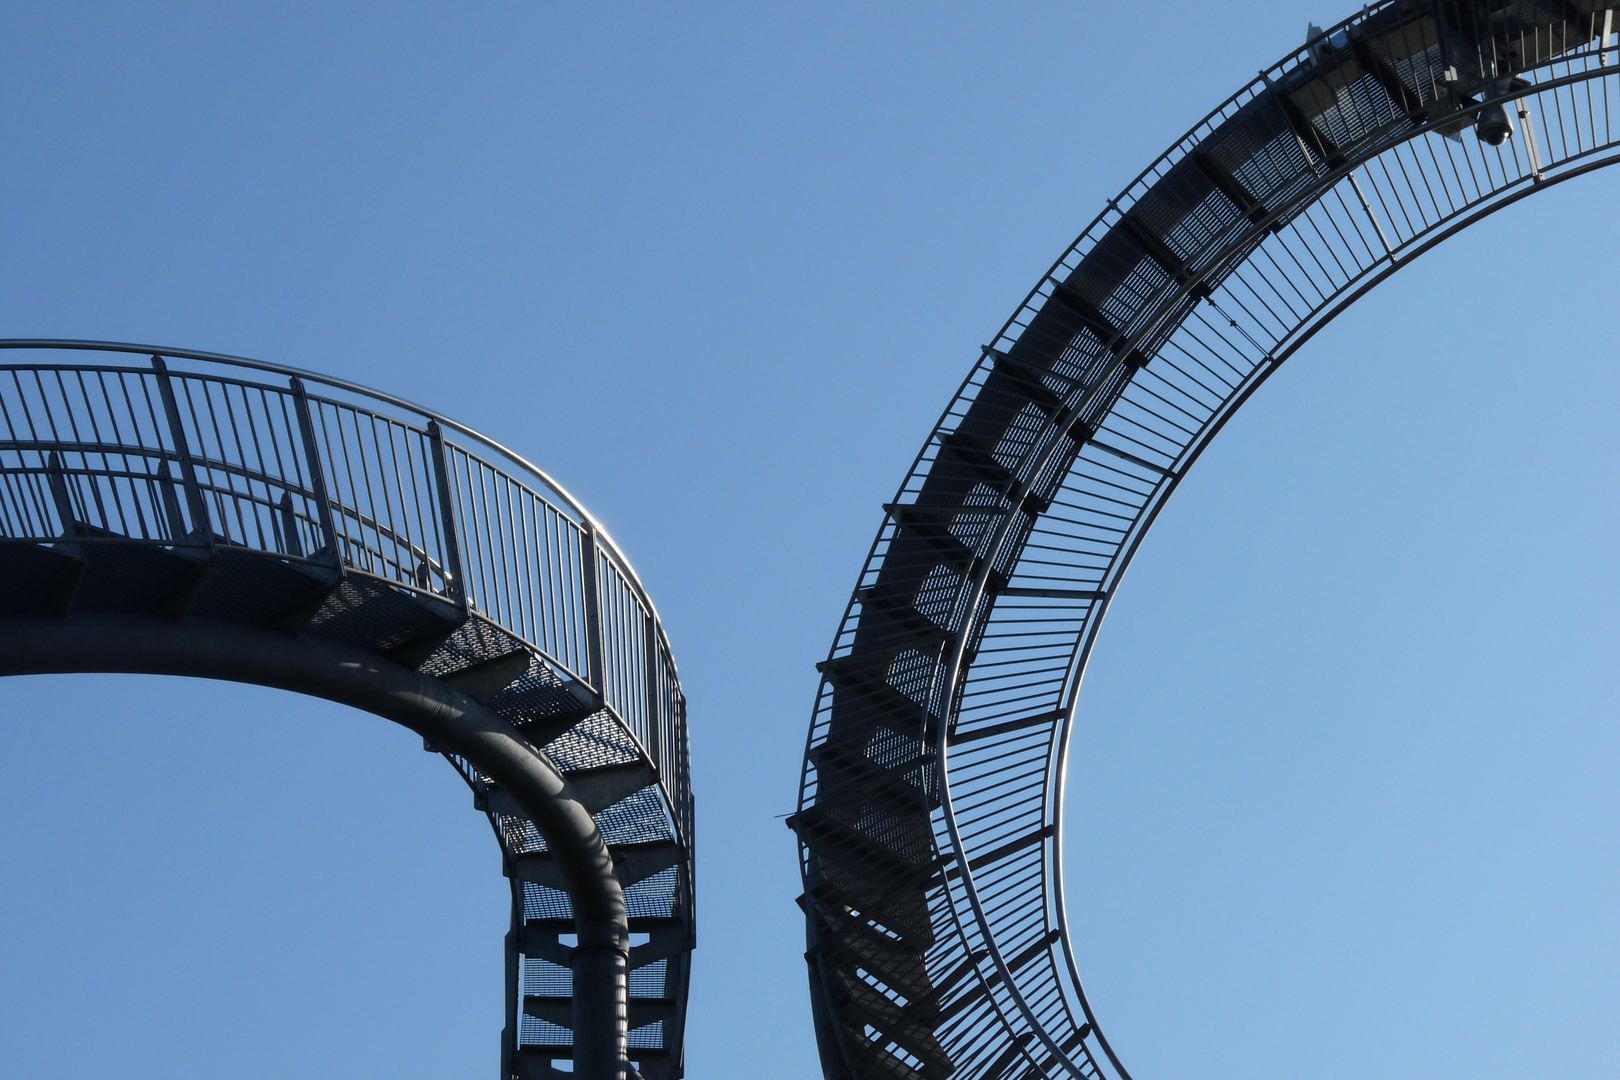 Tiger and Turtle - Ausschnitte